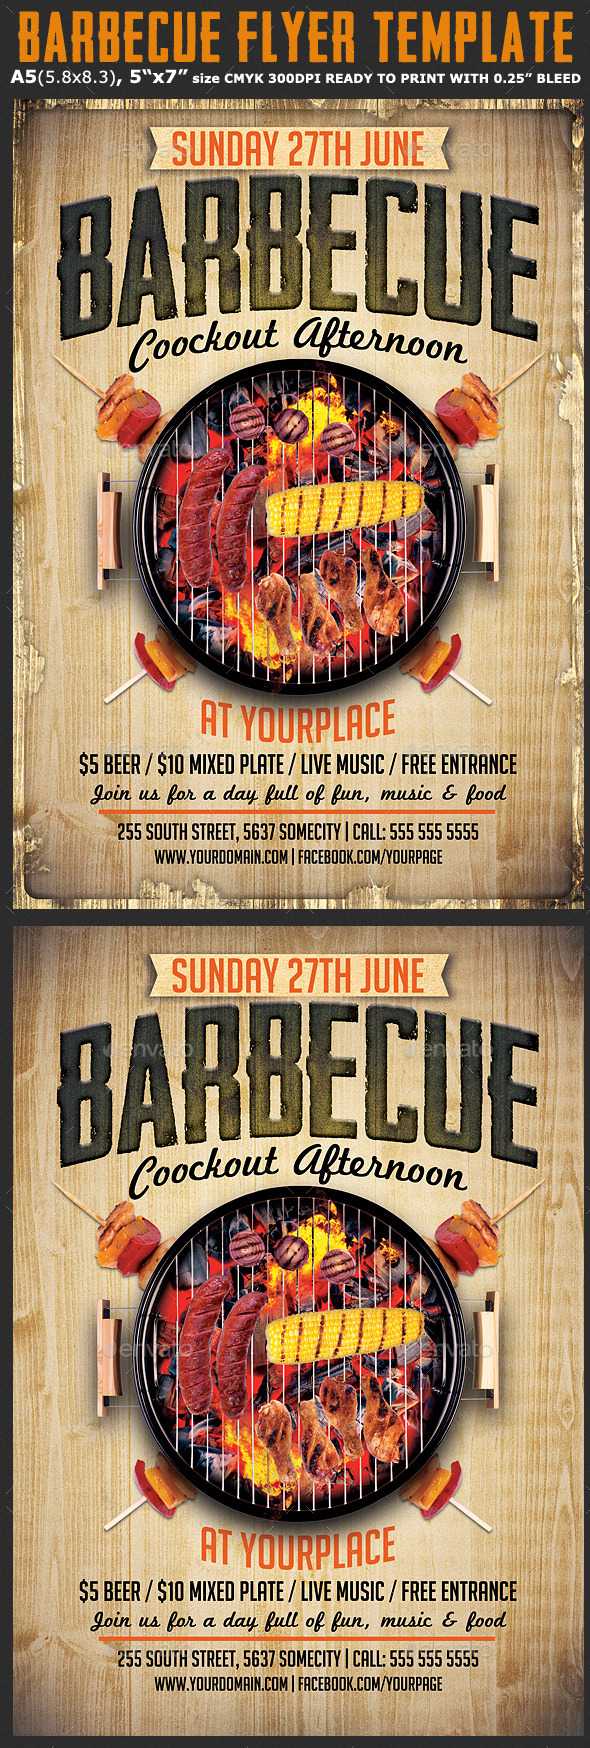 Barbecue Flyer Template   Events Flyers  Flyer Outline